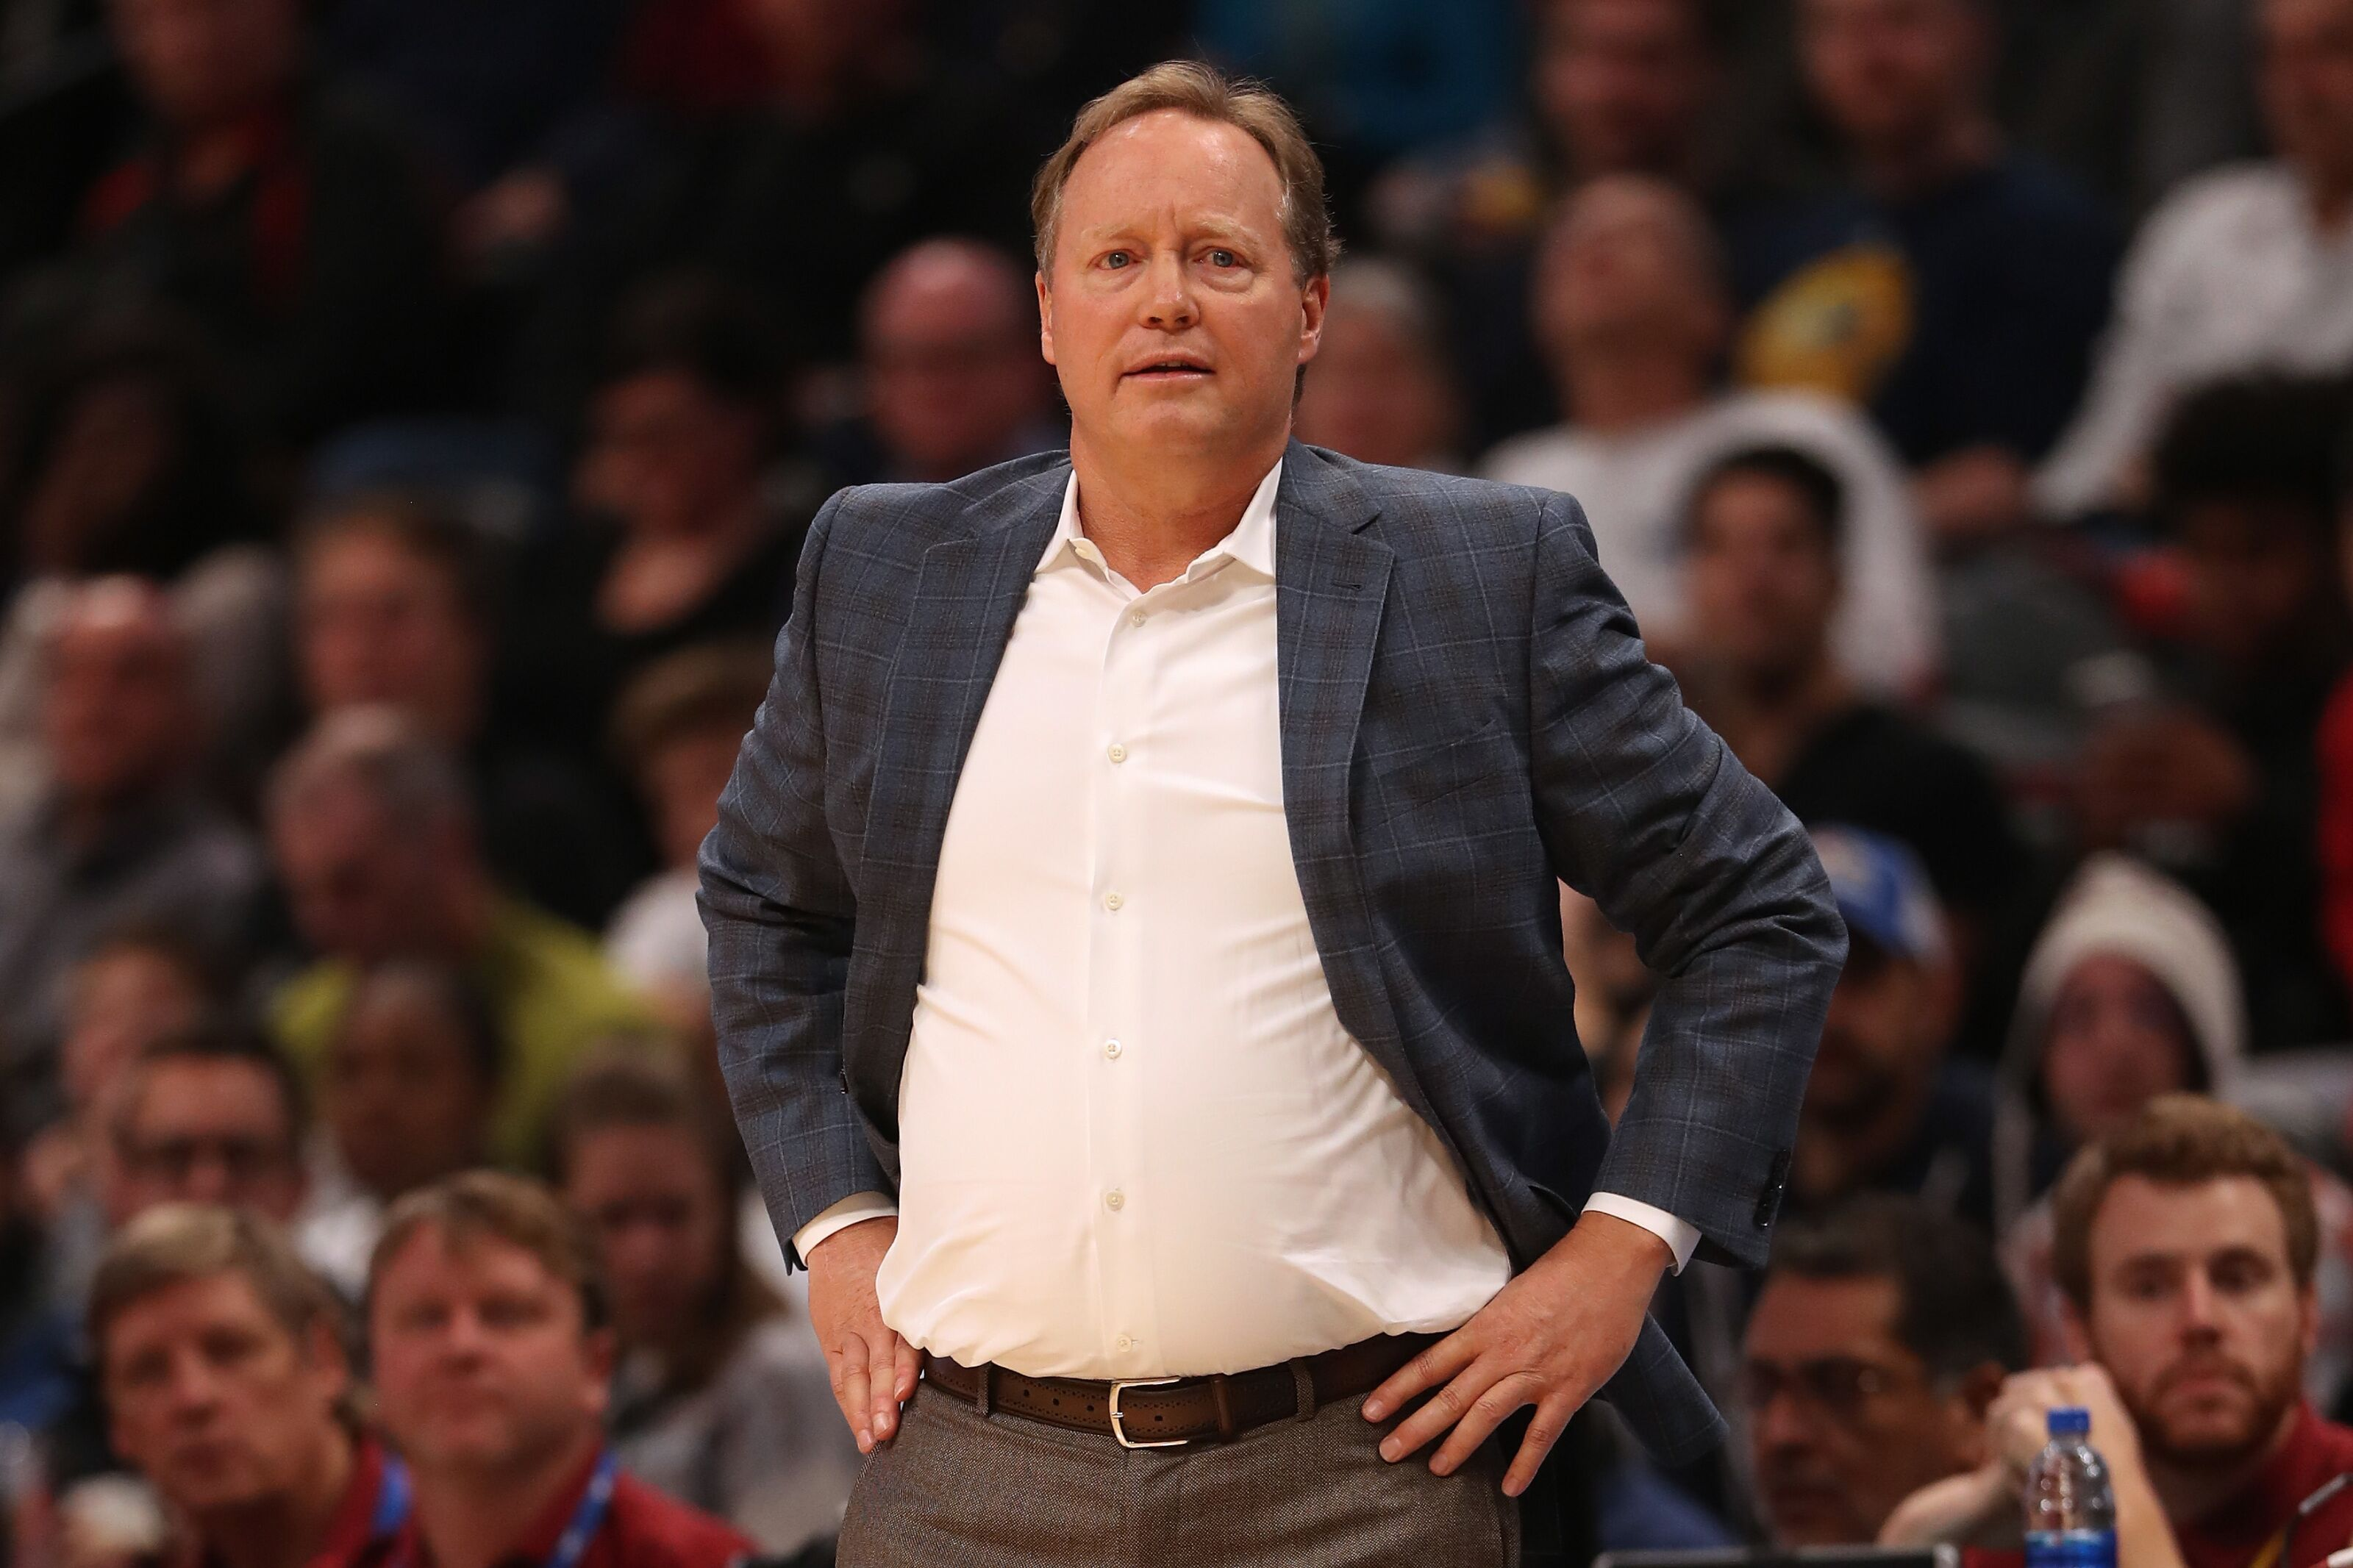 DENVER, CO - NOVEMBER 11: Head coach Mike Budenholzer of the Milwaukee Bucks works the sidelines while playing the Denver Nuggets at the Pepsi Center on November 11, 2018 in Denver, Colorado. NOTE TO USER: User expressly acknowledges and agrees that, by downloading and or using this photograph, User is consenting to the terms and conditions of the Getty Images License Agreement. (Photo by Matthew Stockman/Getty Images)